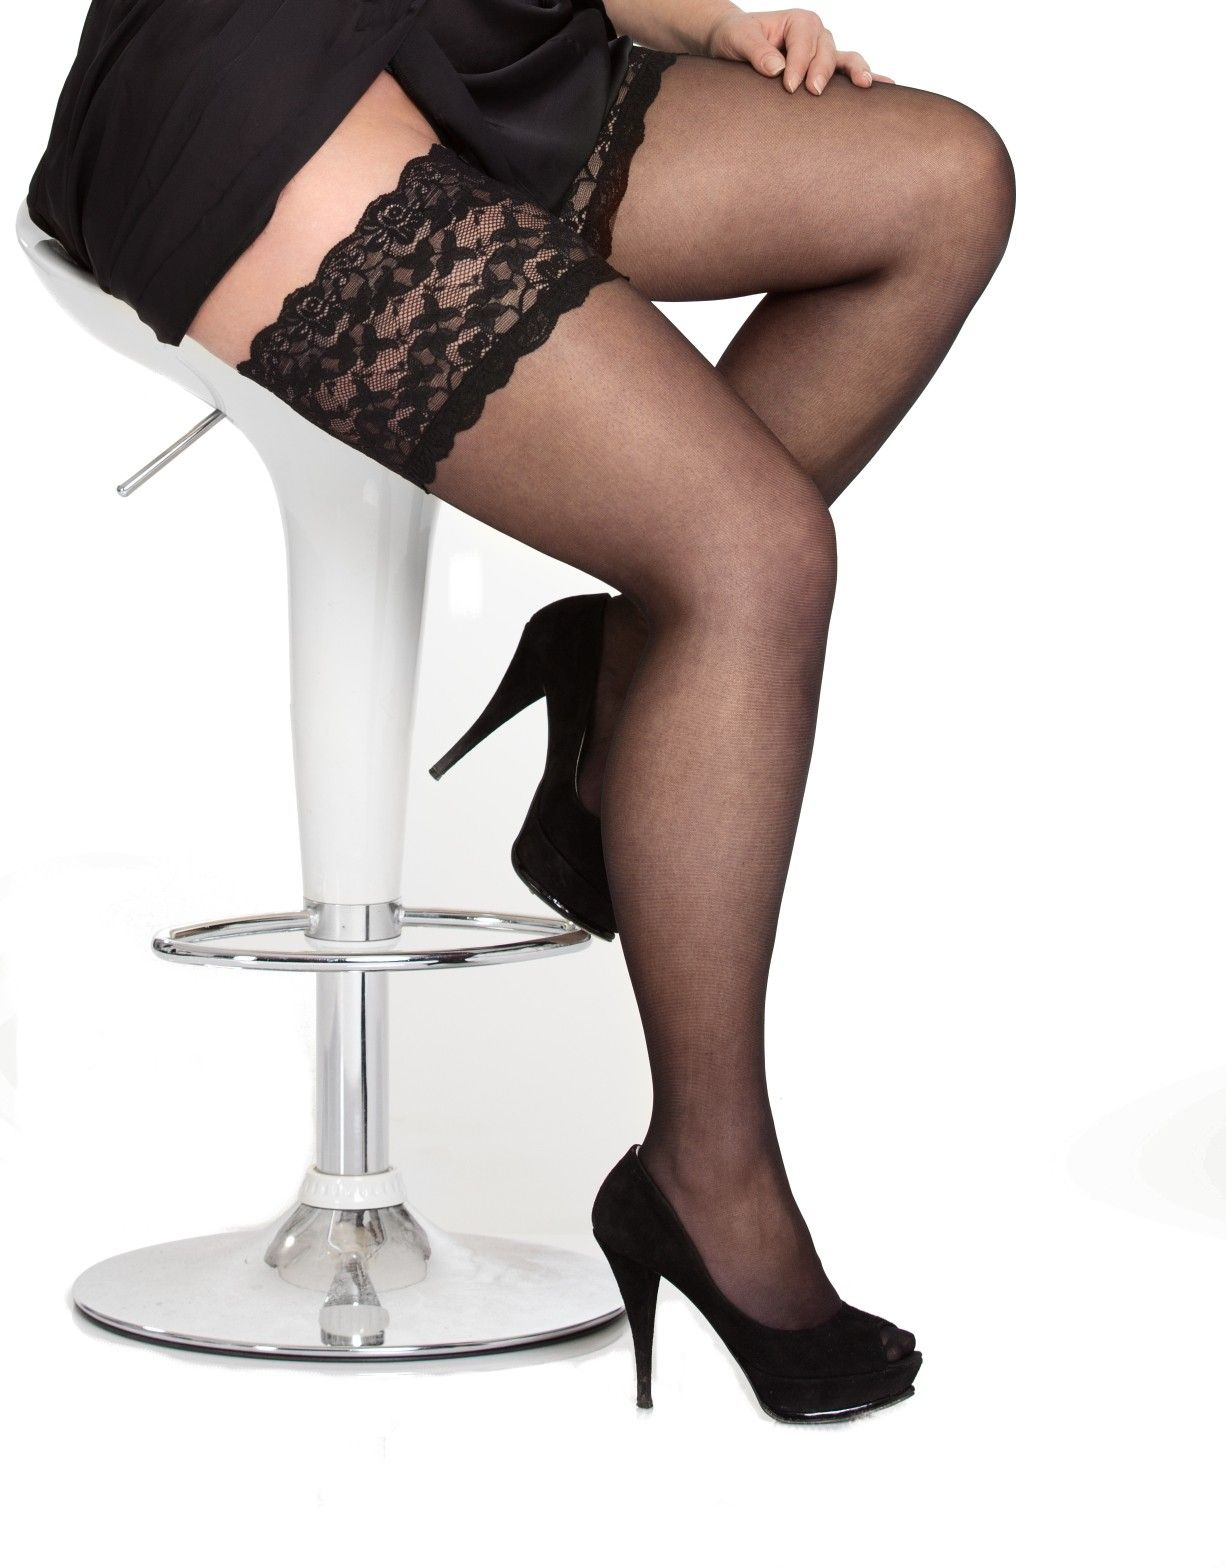 a30233f9c19 plus size stay up thigh highs with lace bands